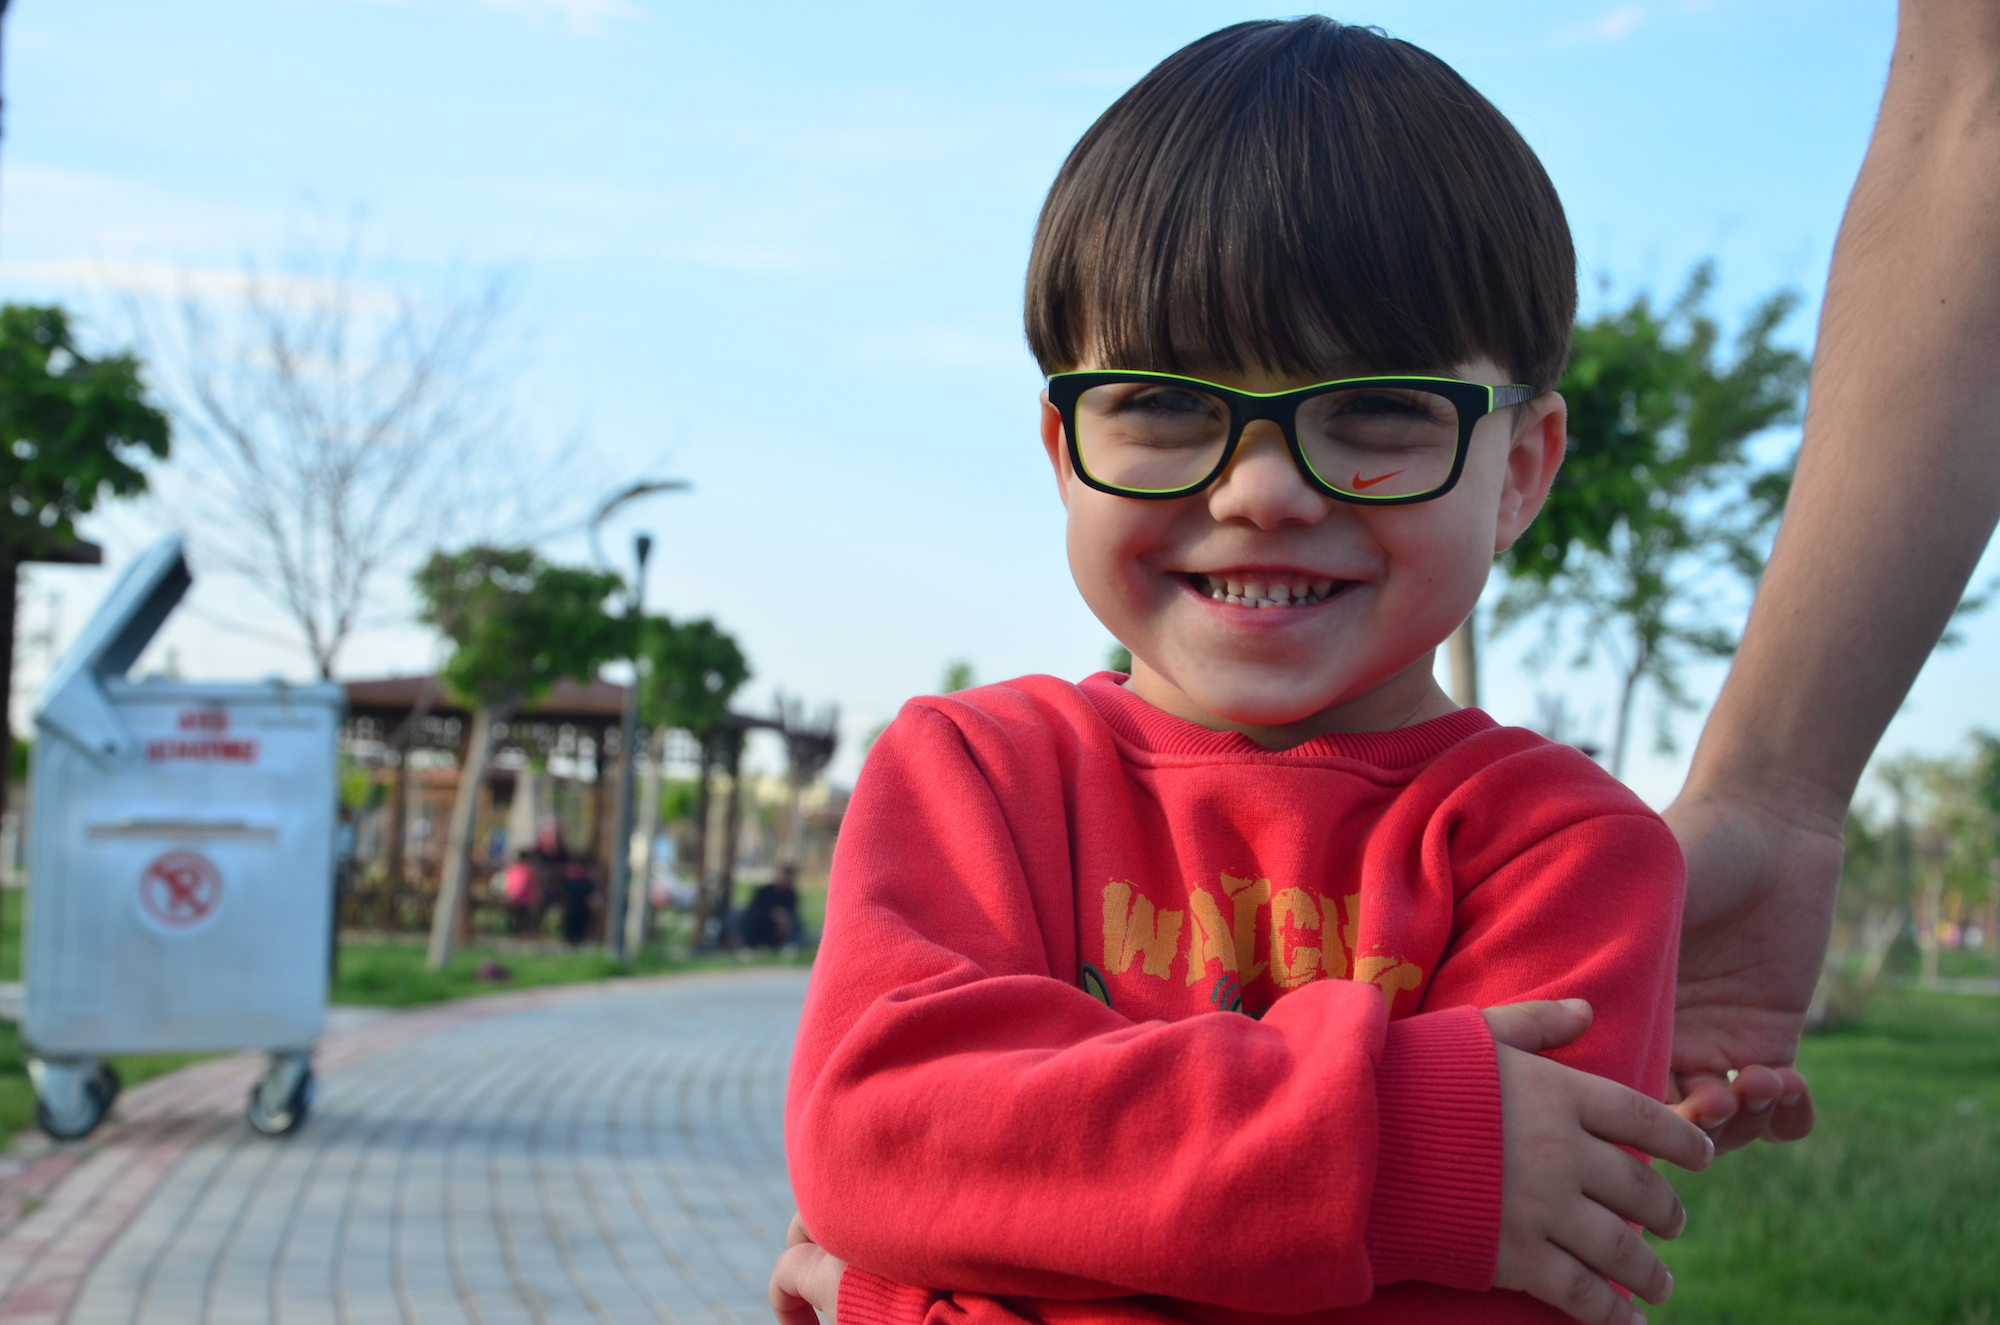 New myopia treatments can help nearsighted children see more clearly.